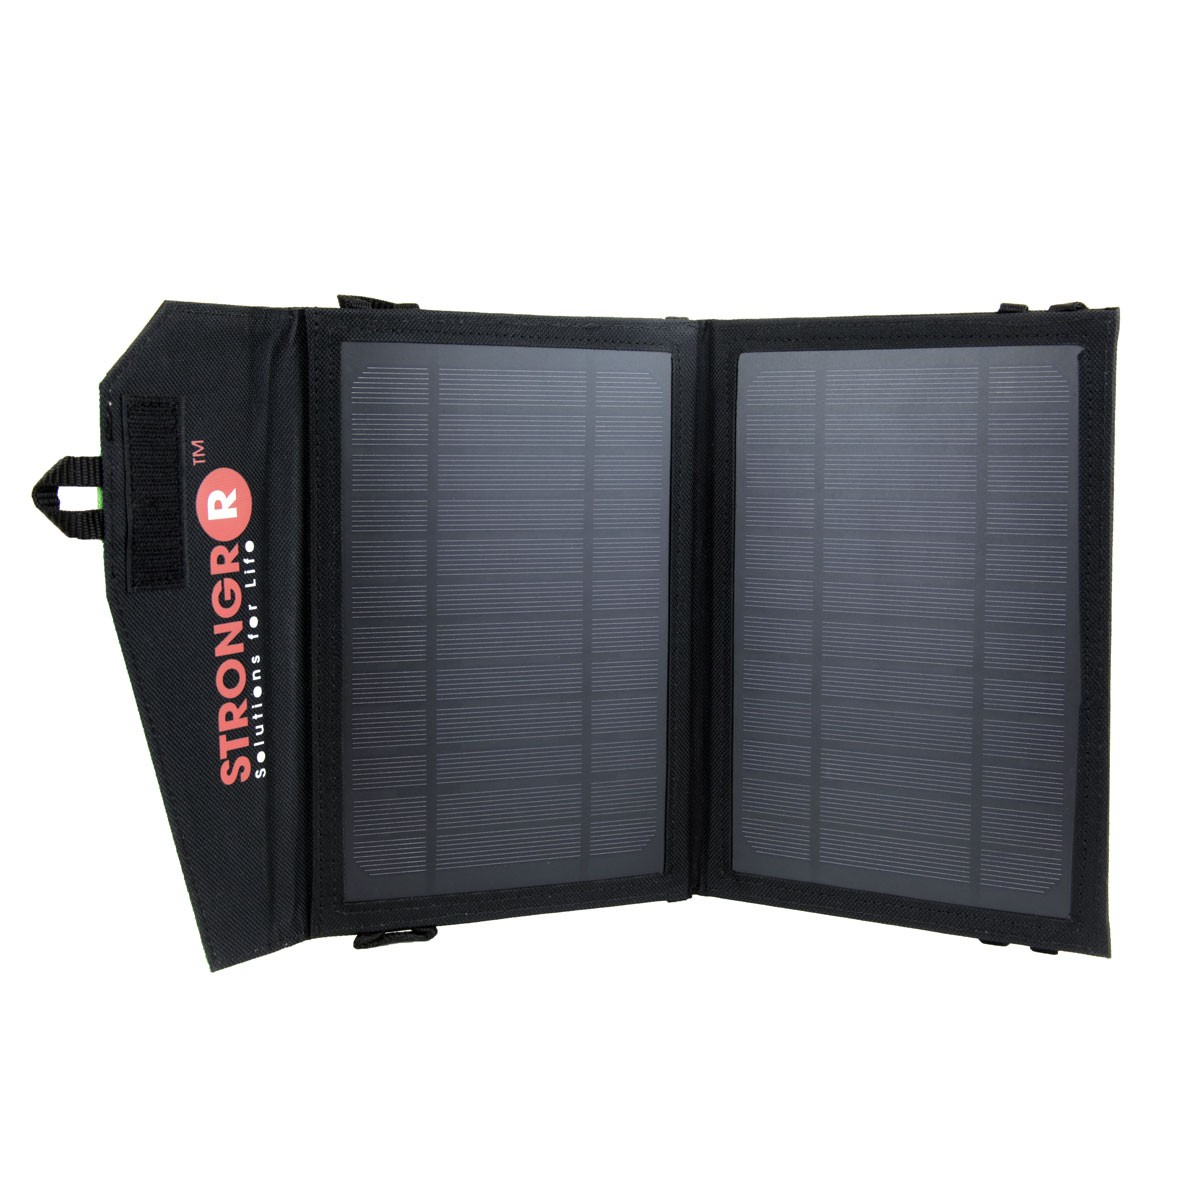 Strongrr 7W Solar Charger w/ Foldable High Efficient Monocrystalline Panels